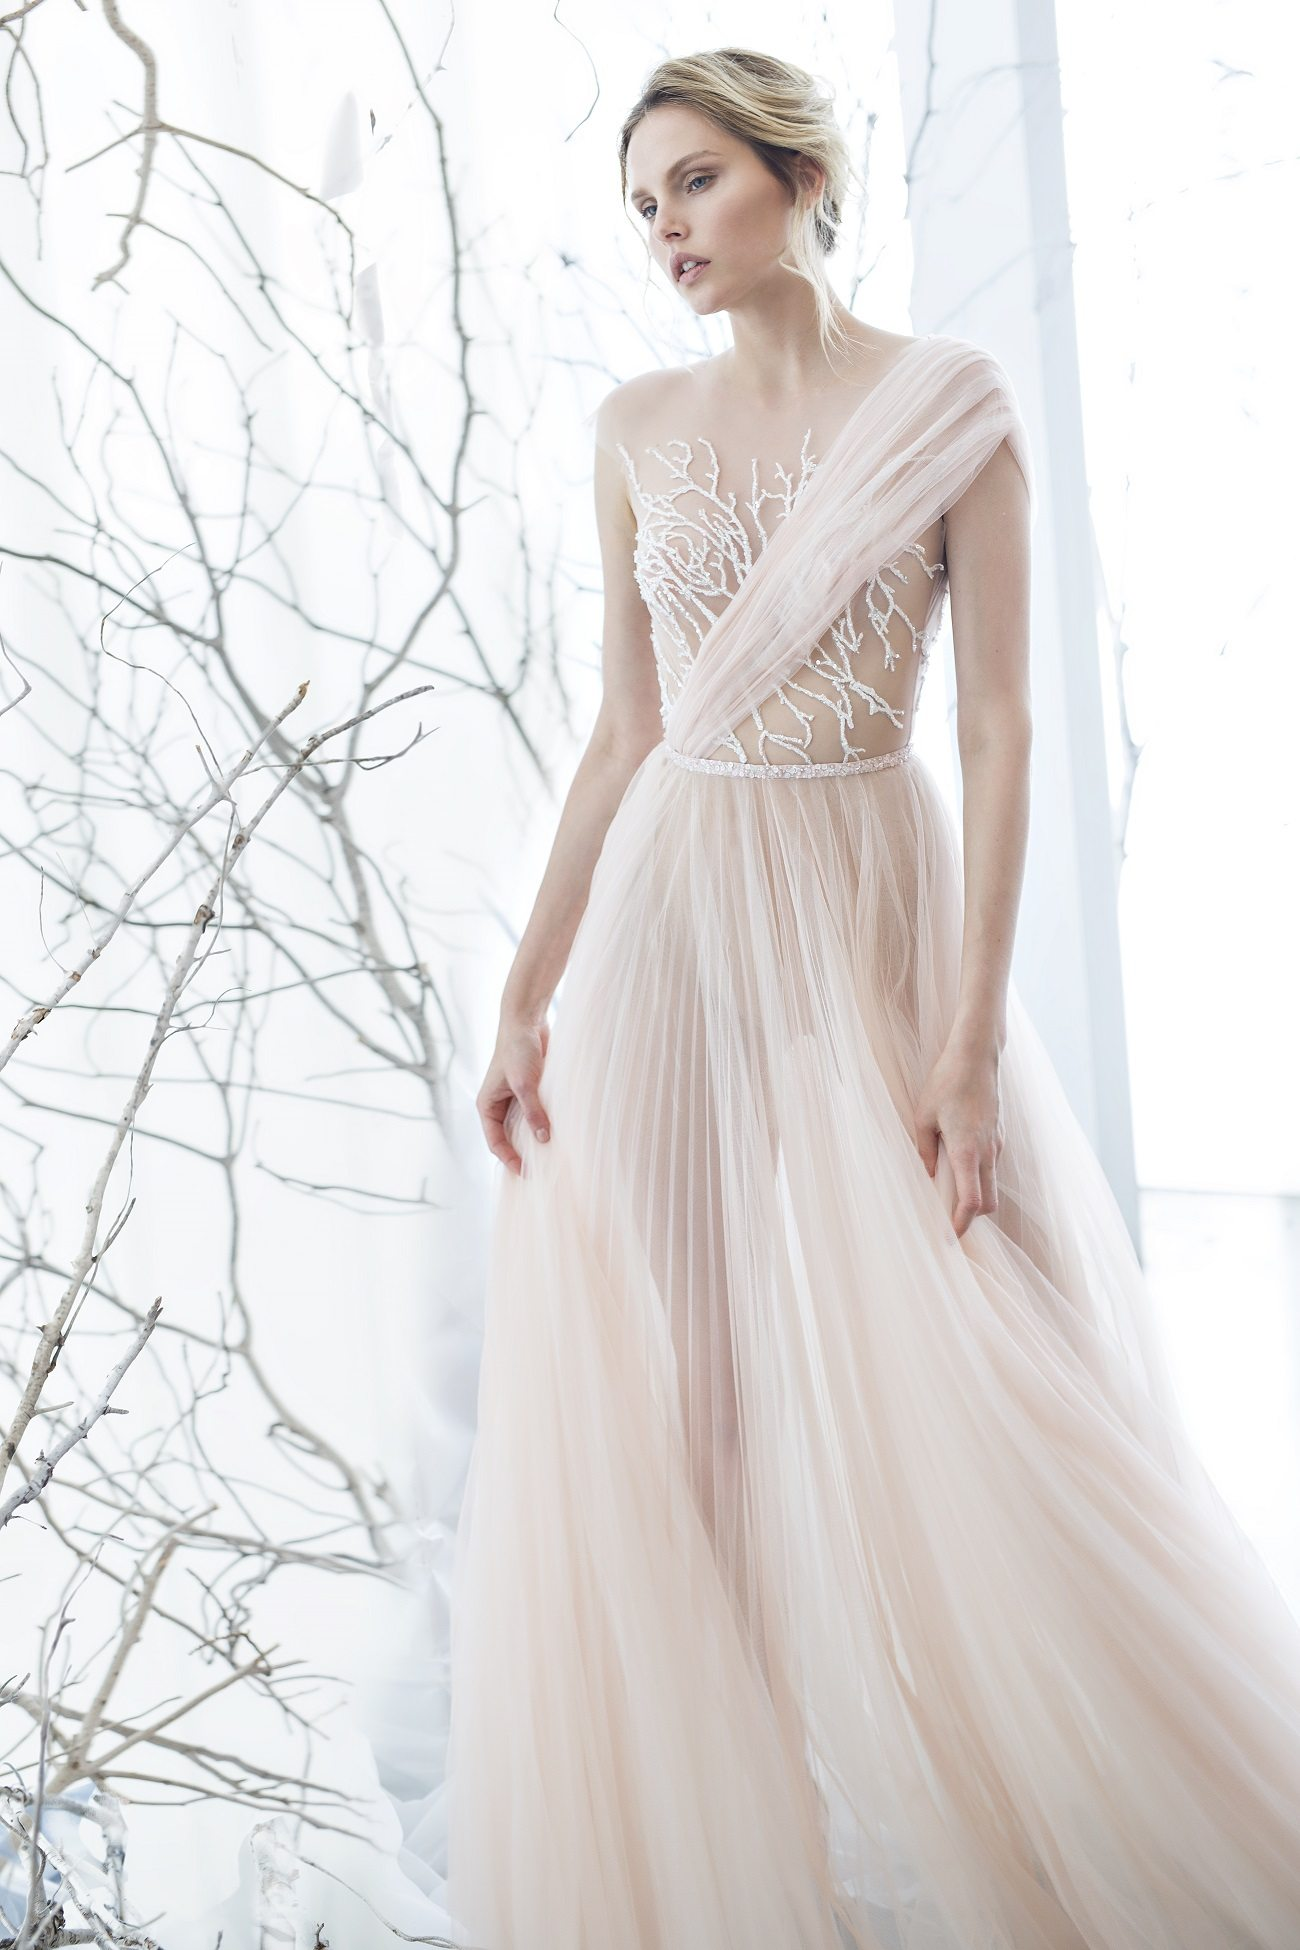 Dresses for Vow Renewals